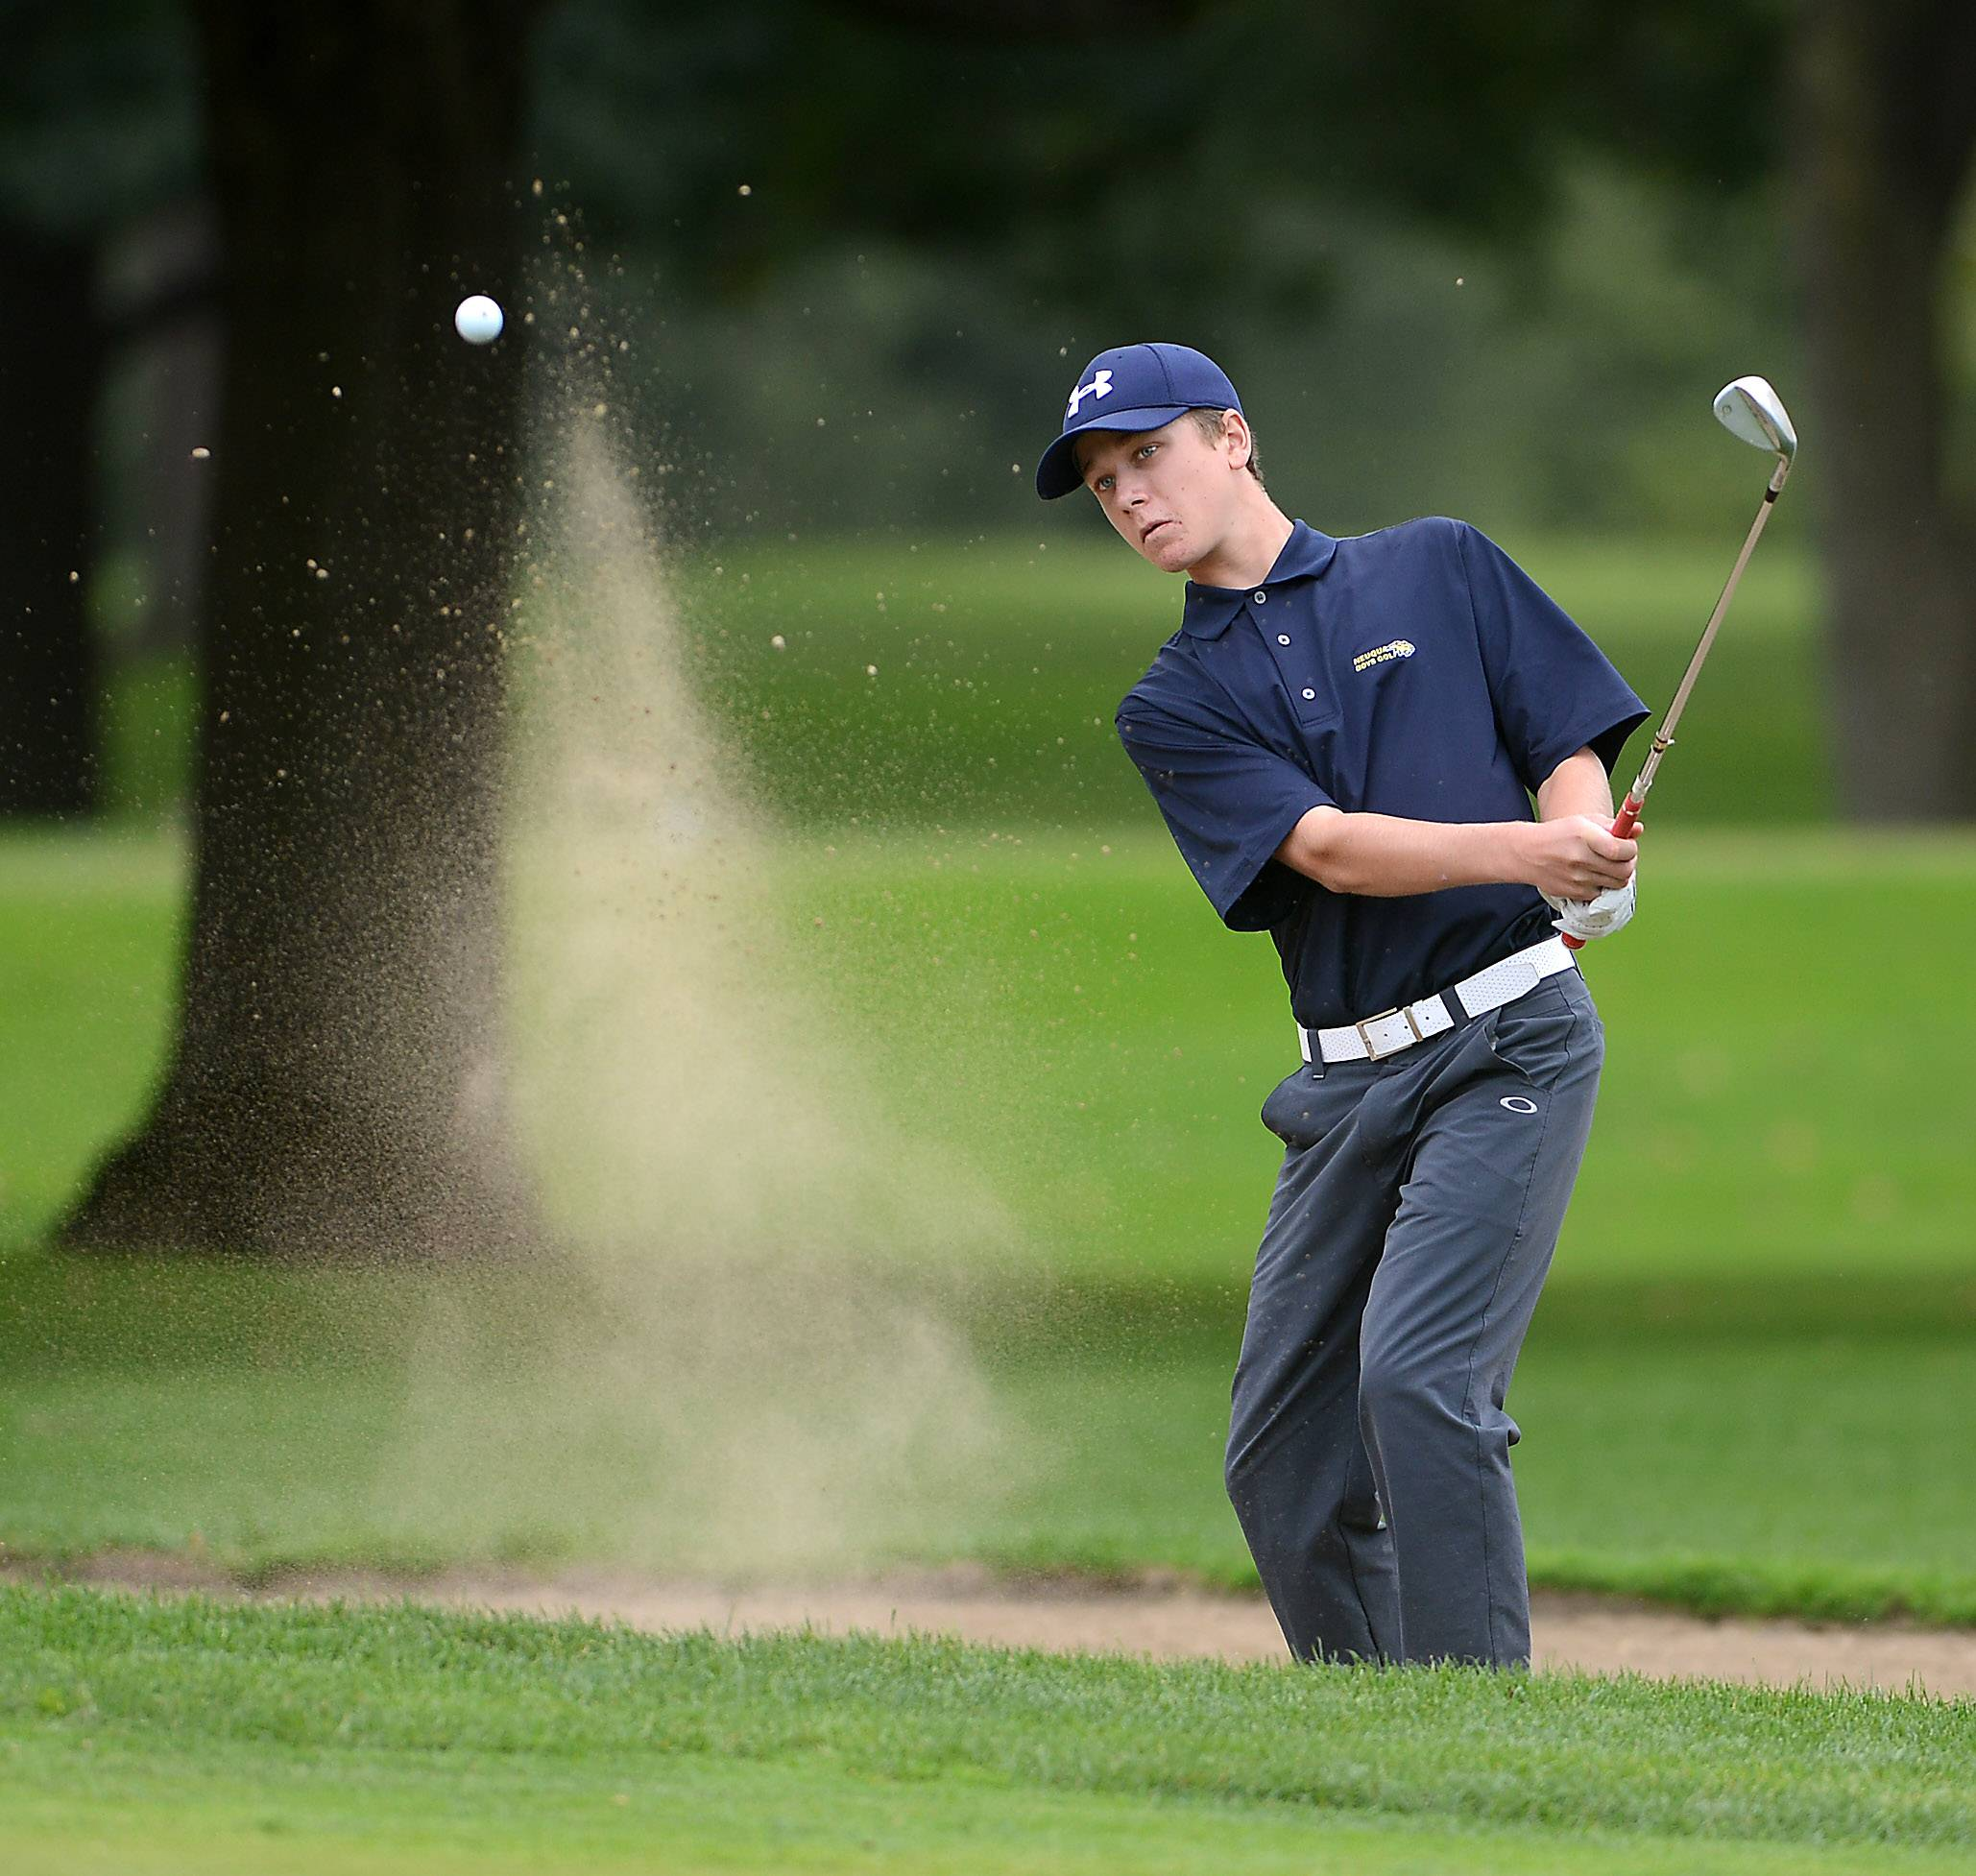 Jack Vercauteren of Neuqua Valley puts in on the green from the sand during the St. Charles East boys golf sectional at St. Andrews Golf Club in West Chicago Monday.